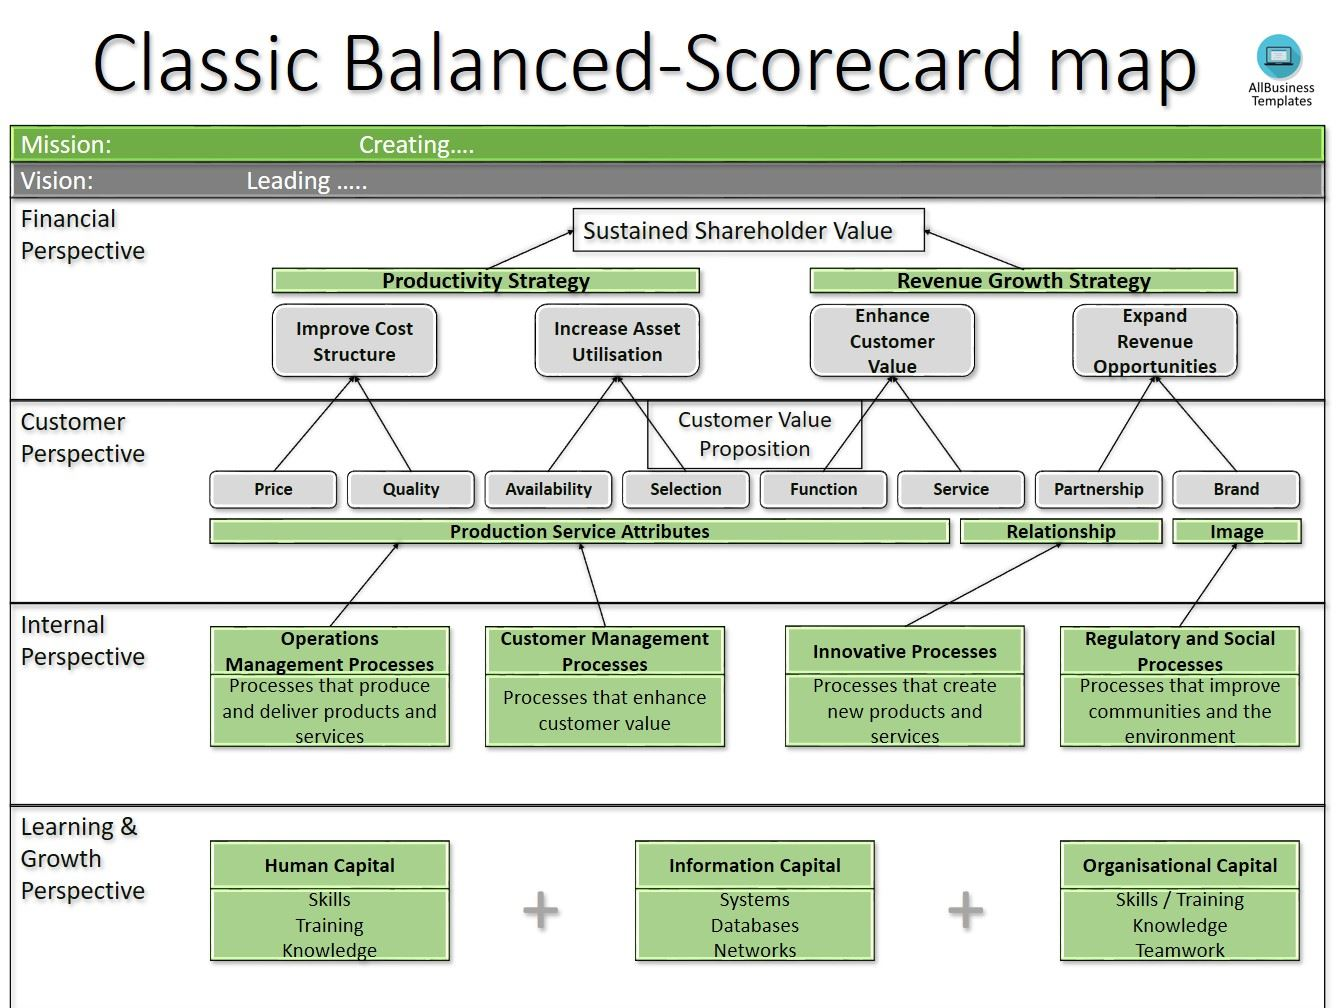 Business balanced scorecard template templates at business balanced scorecard template main image flashek Images